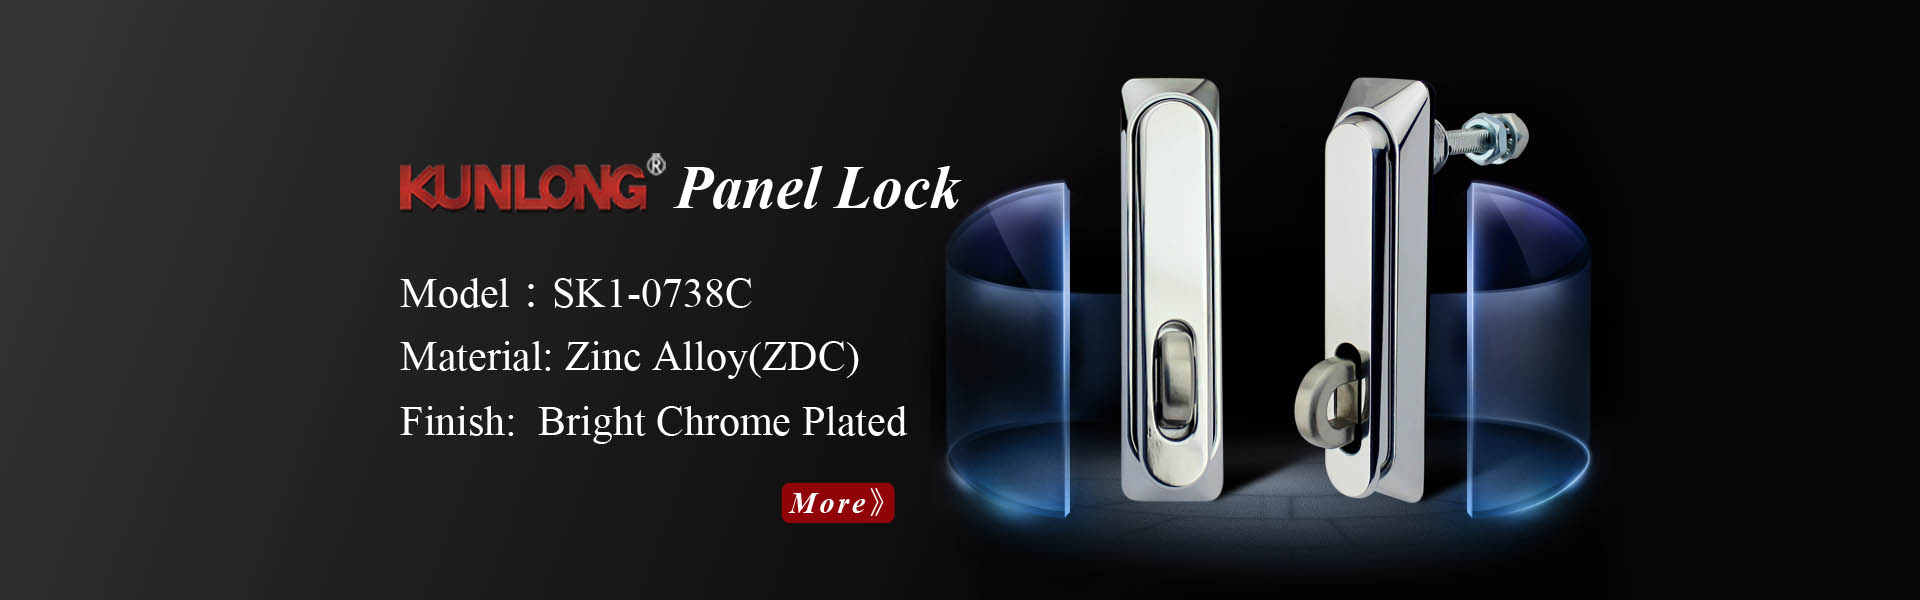 KUNLONG Panel Lock